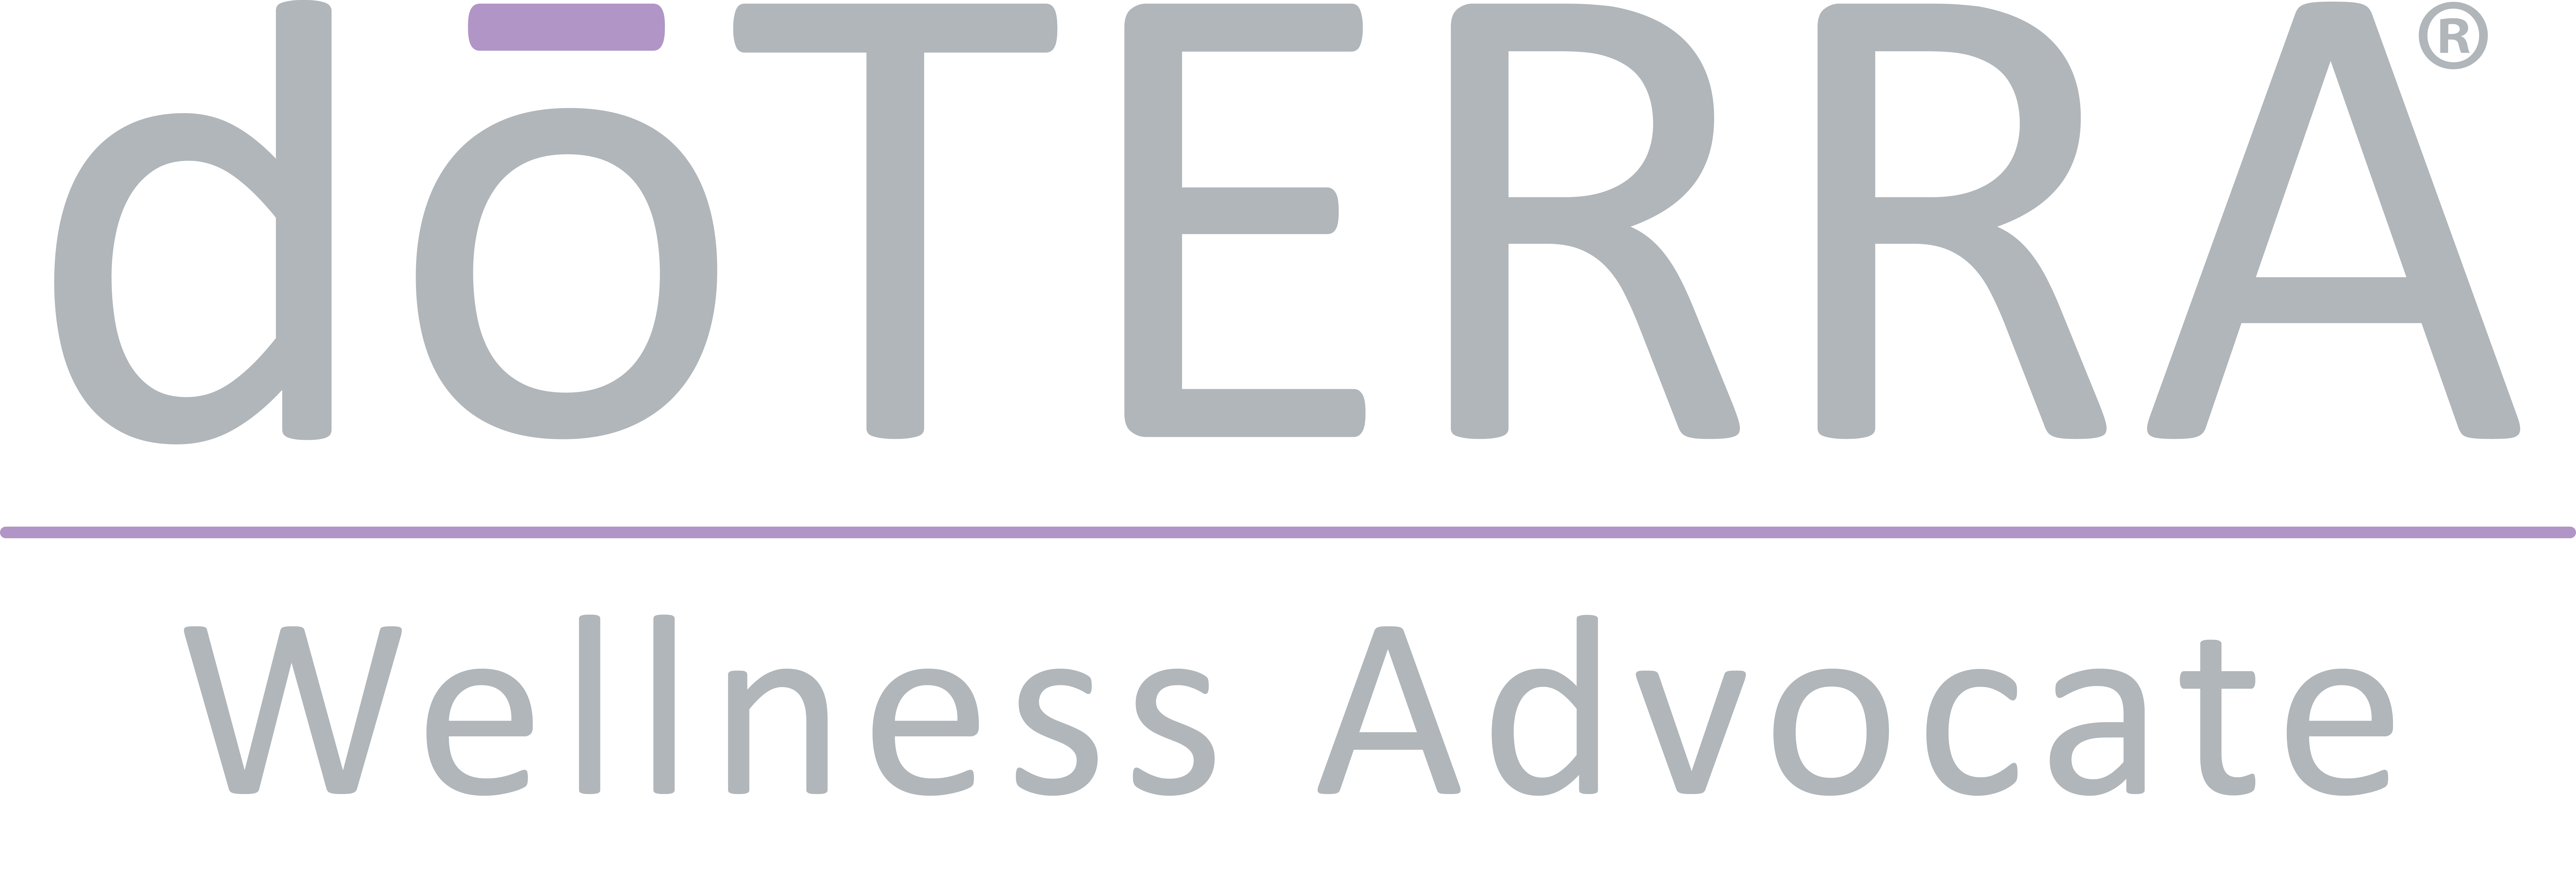 https://media.doterra.com/us/en/images/logo/doterra-wellness-advocate-colors.png